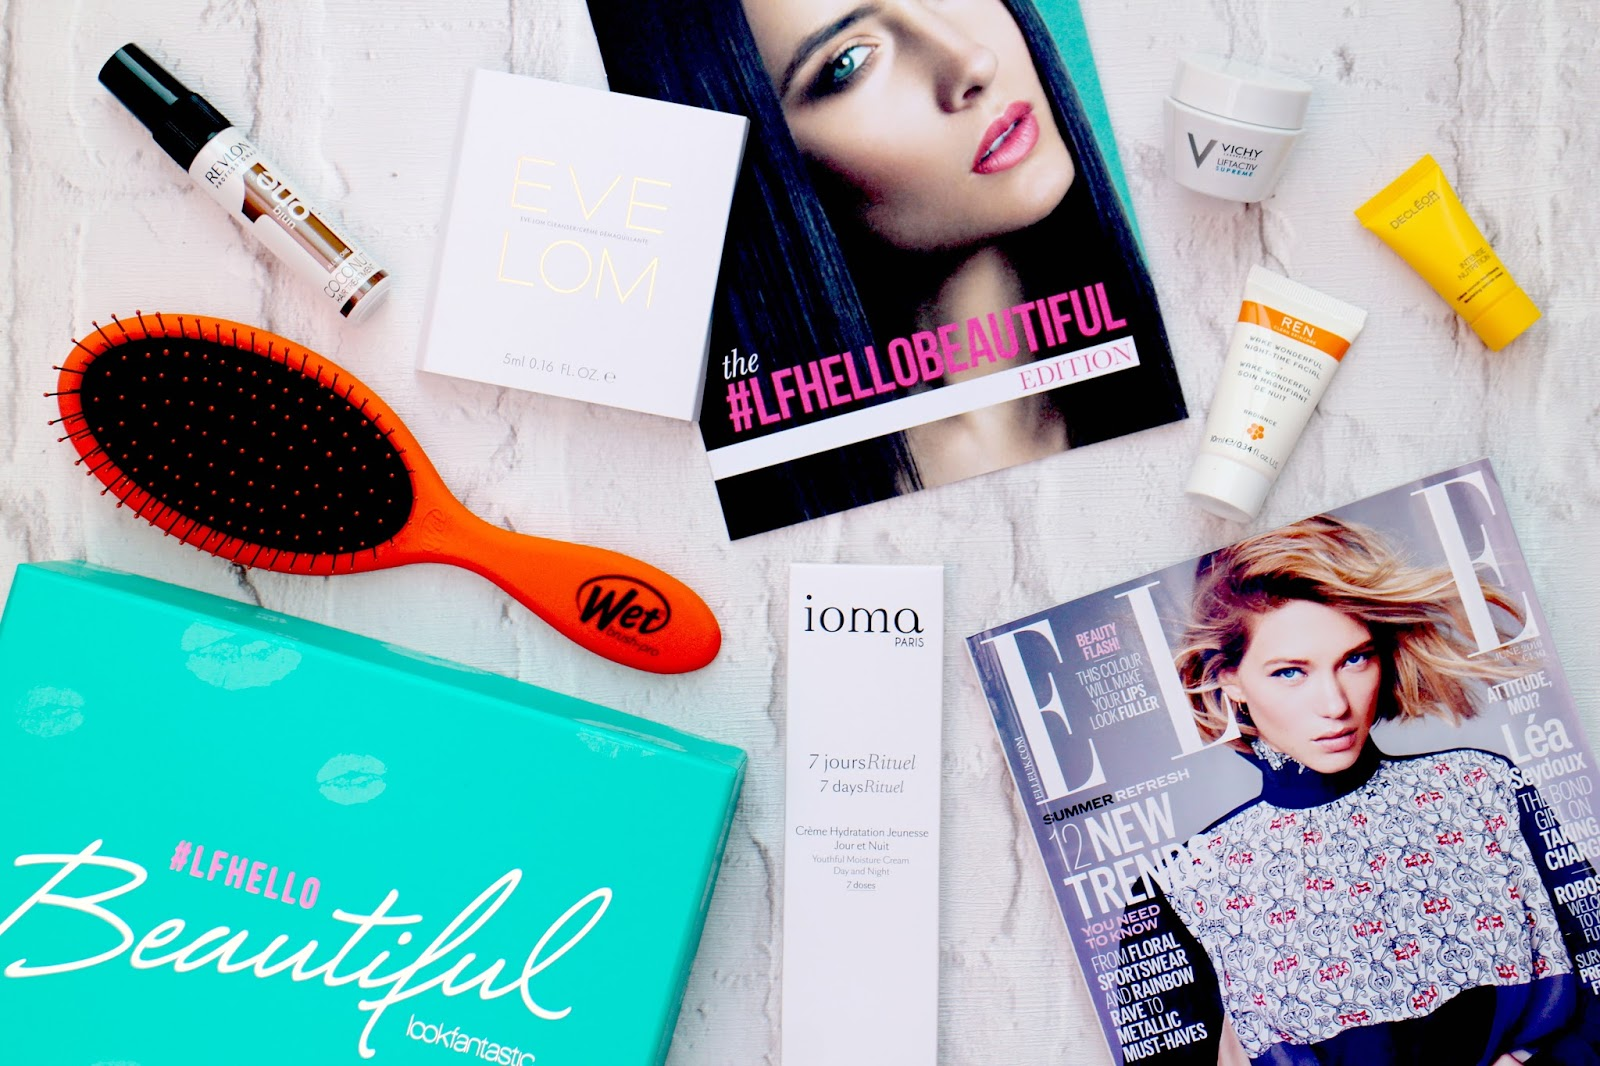 Look Fantastic #LFHelloBeautiful Beauty Box